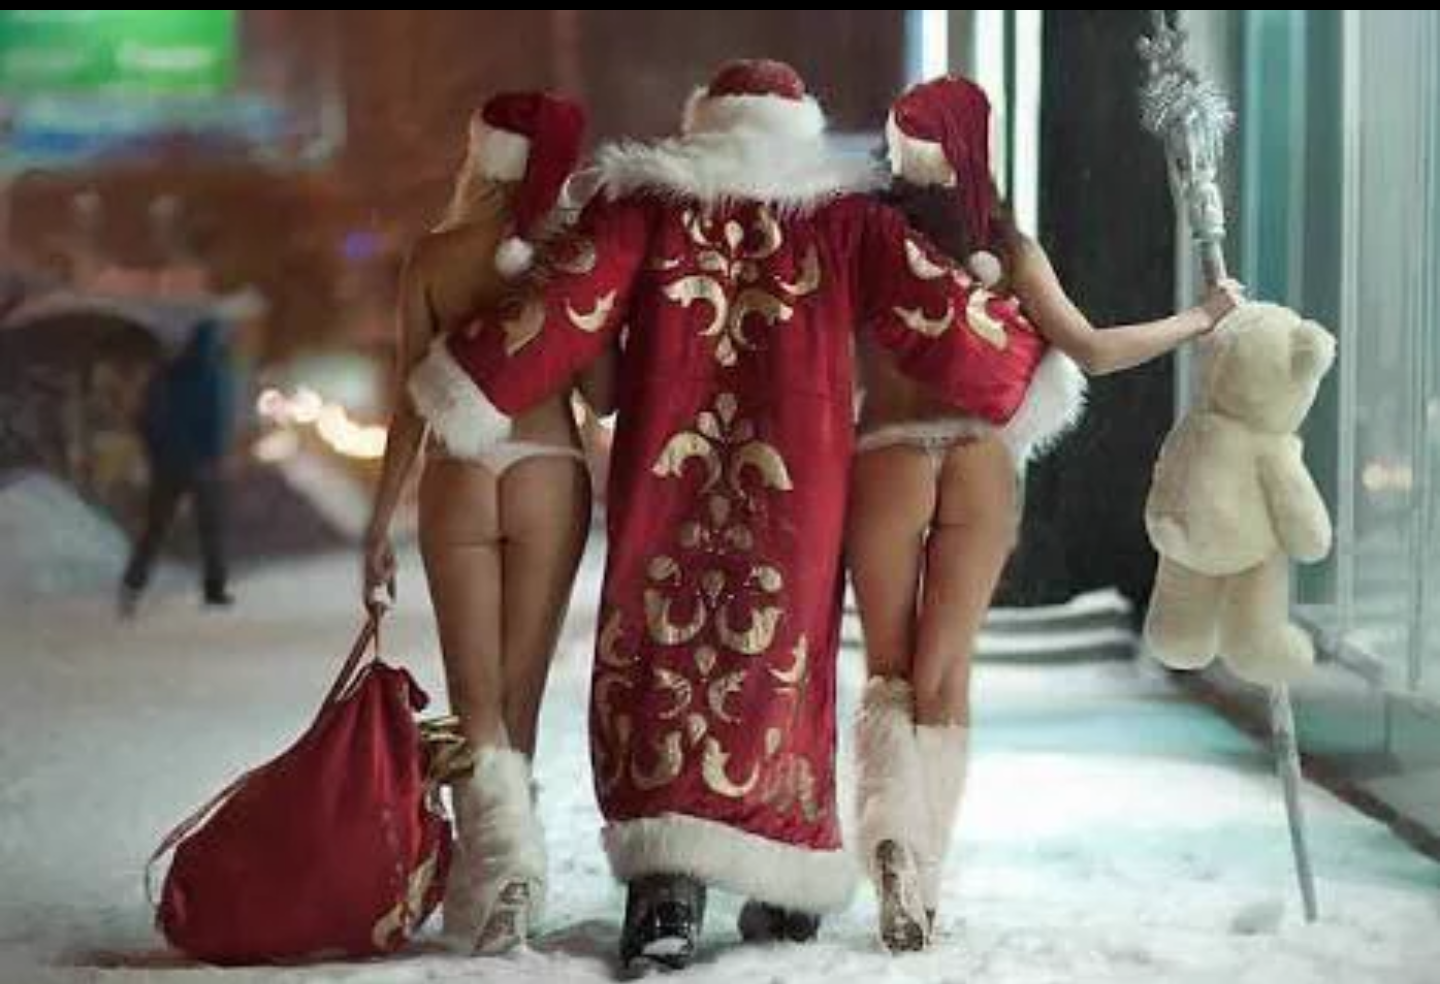 Erotic santa claus stories pron pictures